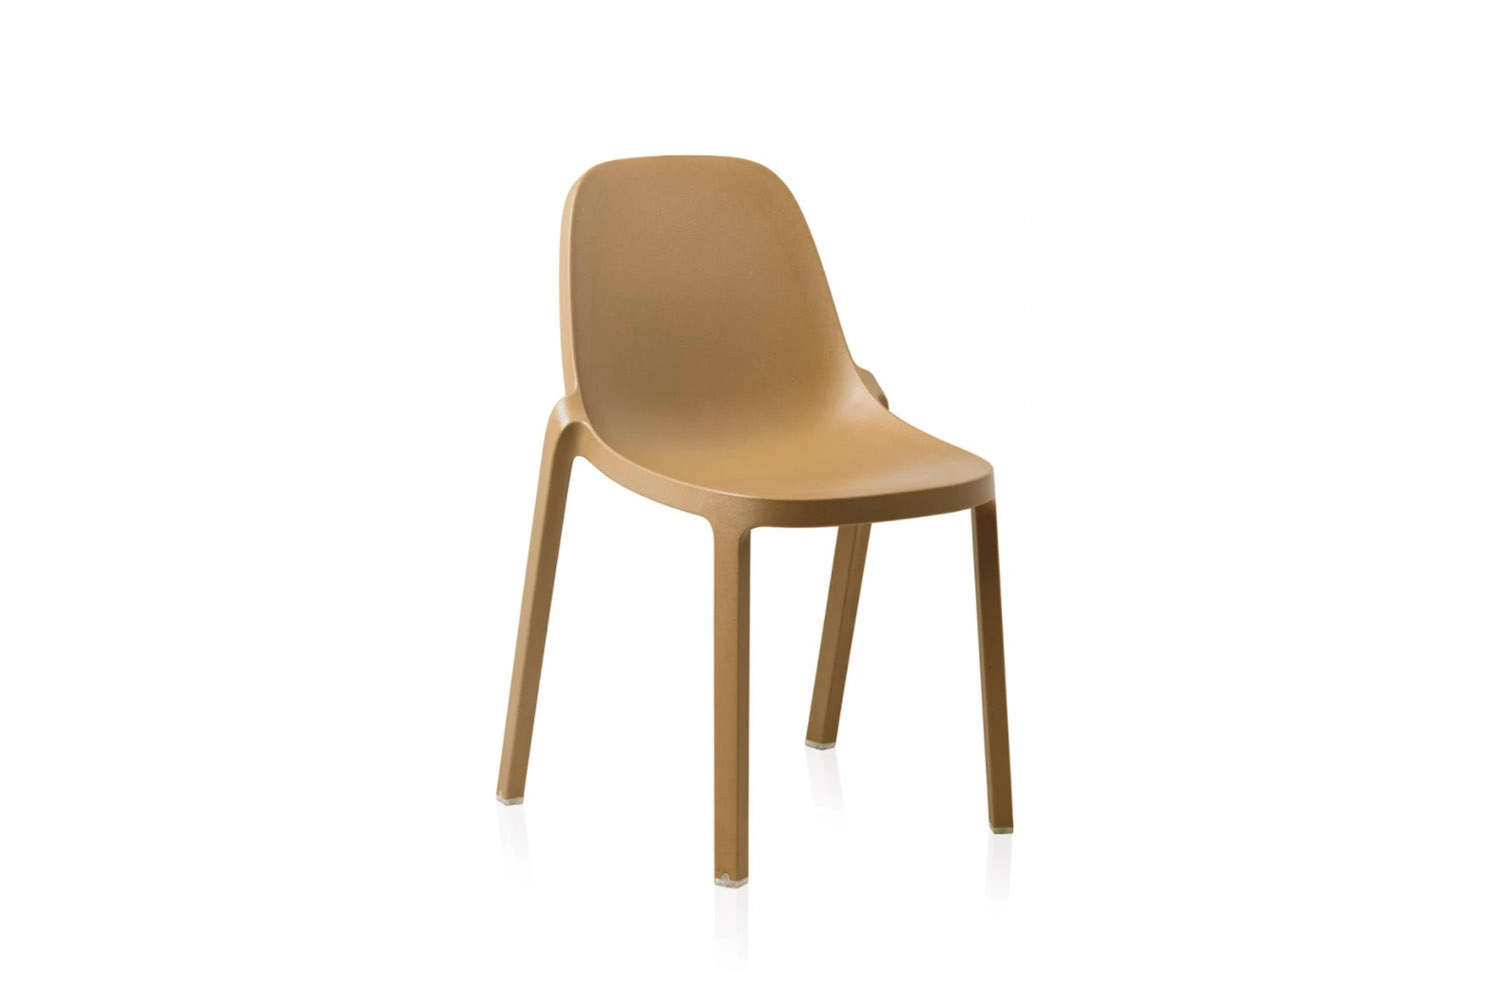 The Emeco Broom Stacking Chair is $